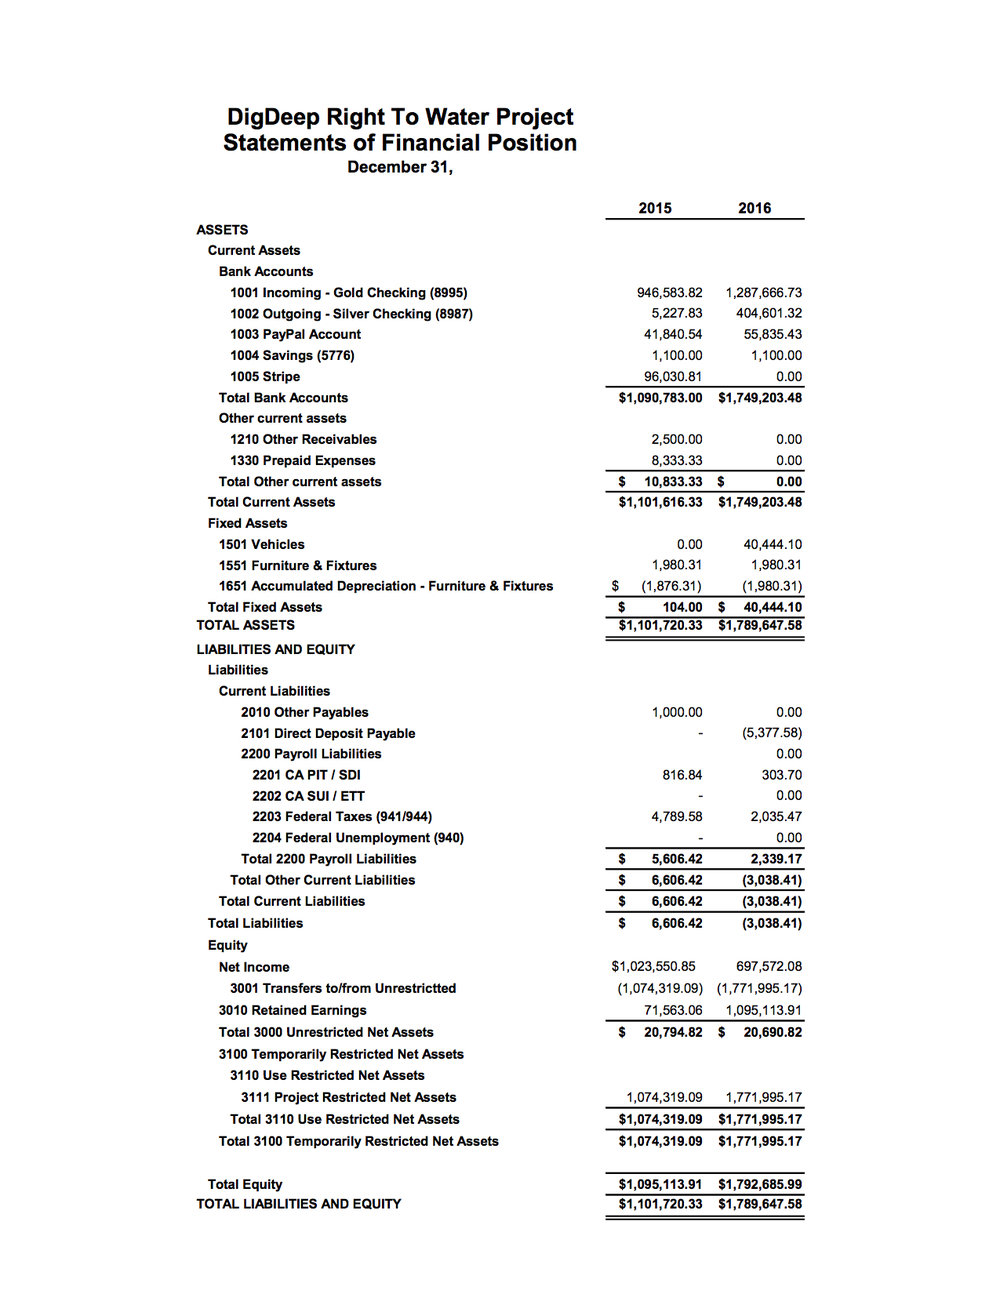 2016 Financial Statements DDRWP 2016 0320.xlsx (dragged) 1.jpg